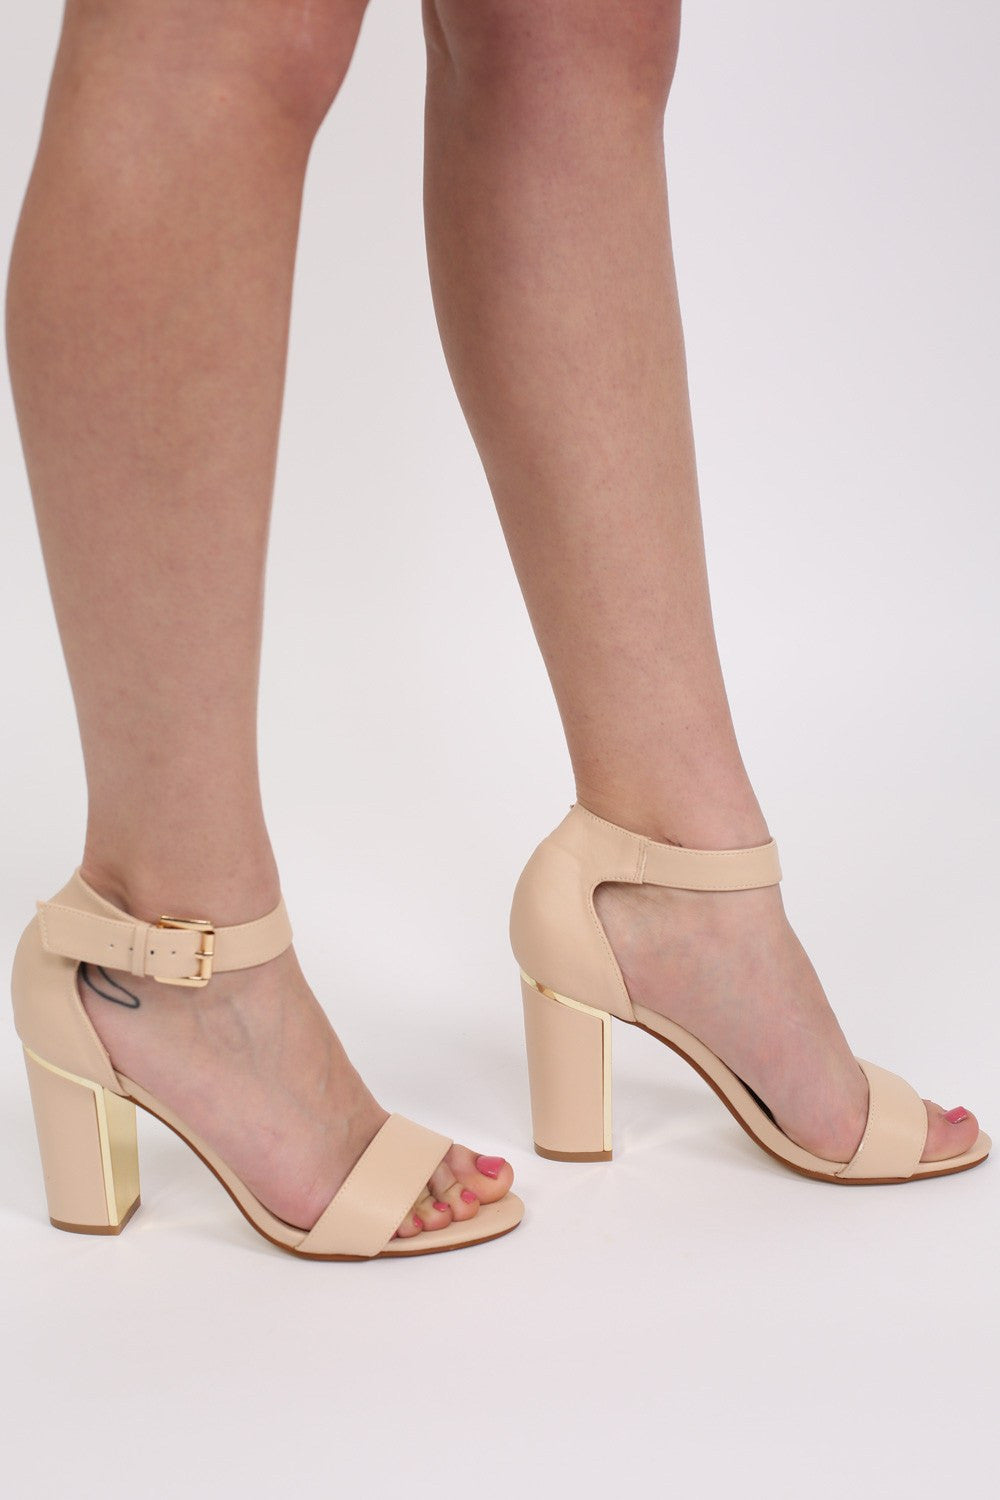 a98b4a87993c Block Heel Strappy Sandals in Nude MODEL SIDE